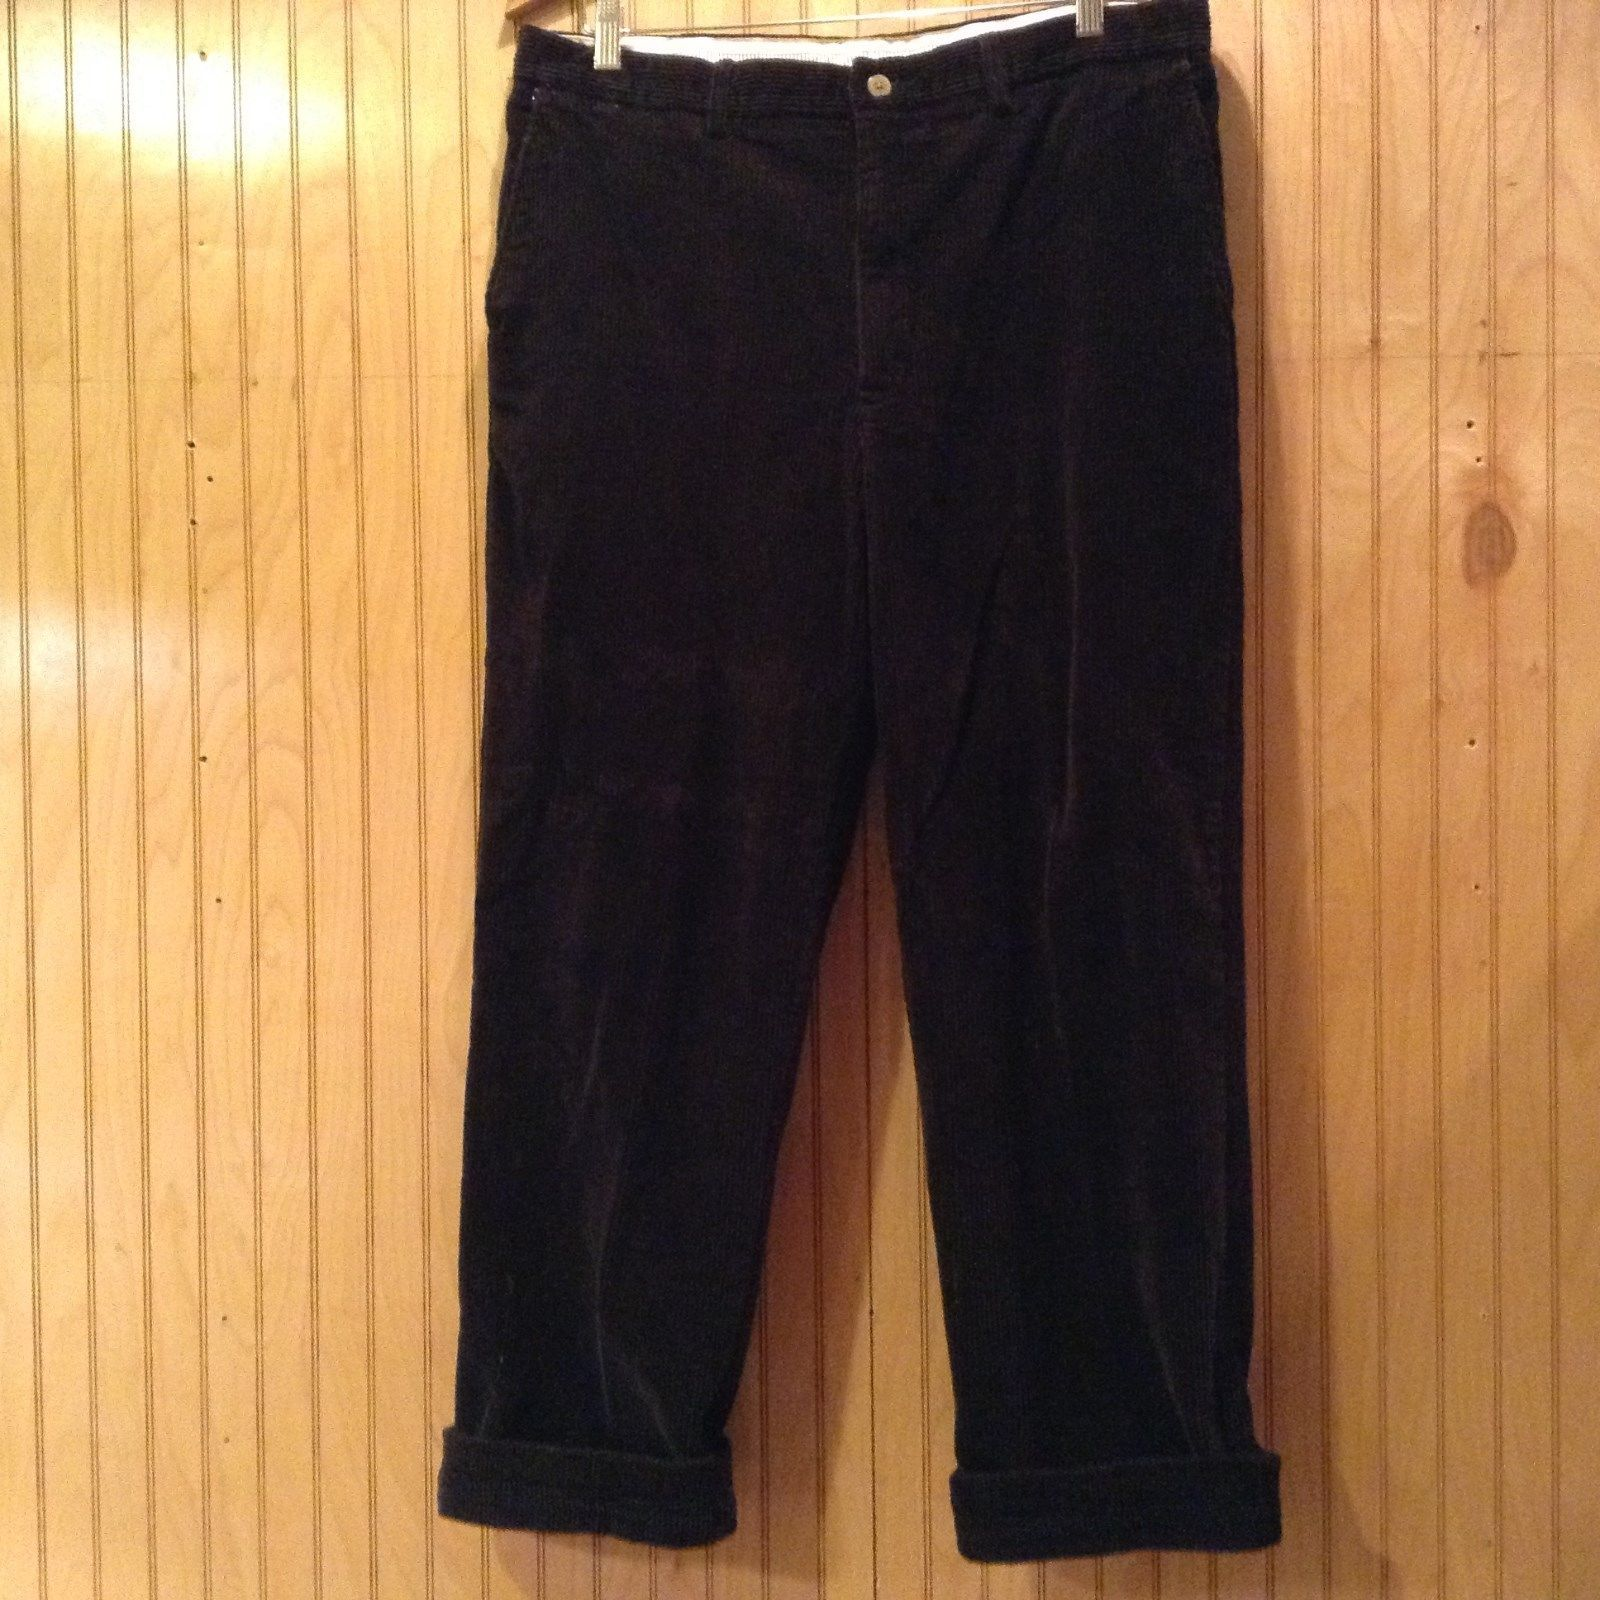 Size 36W by 32L Savane Black 100 Percent Cotton Casual Pants